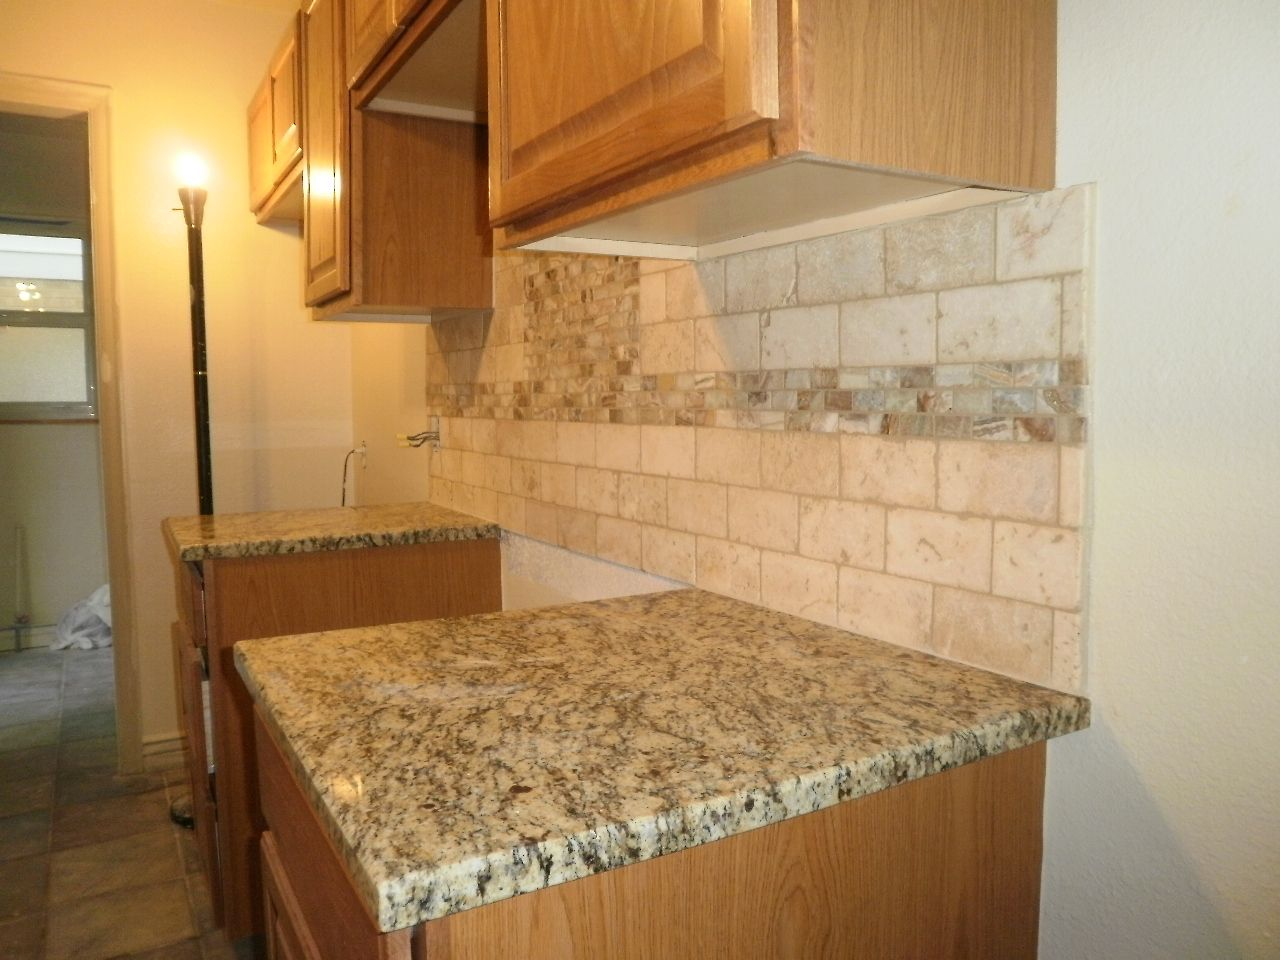 Uncategorized Travertine Kitchen Backsplash travertine tile backsplash just completed 3x6 find this pin and more on kitchen by marindasf